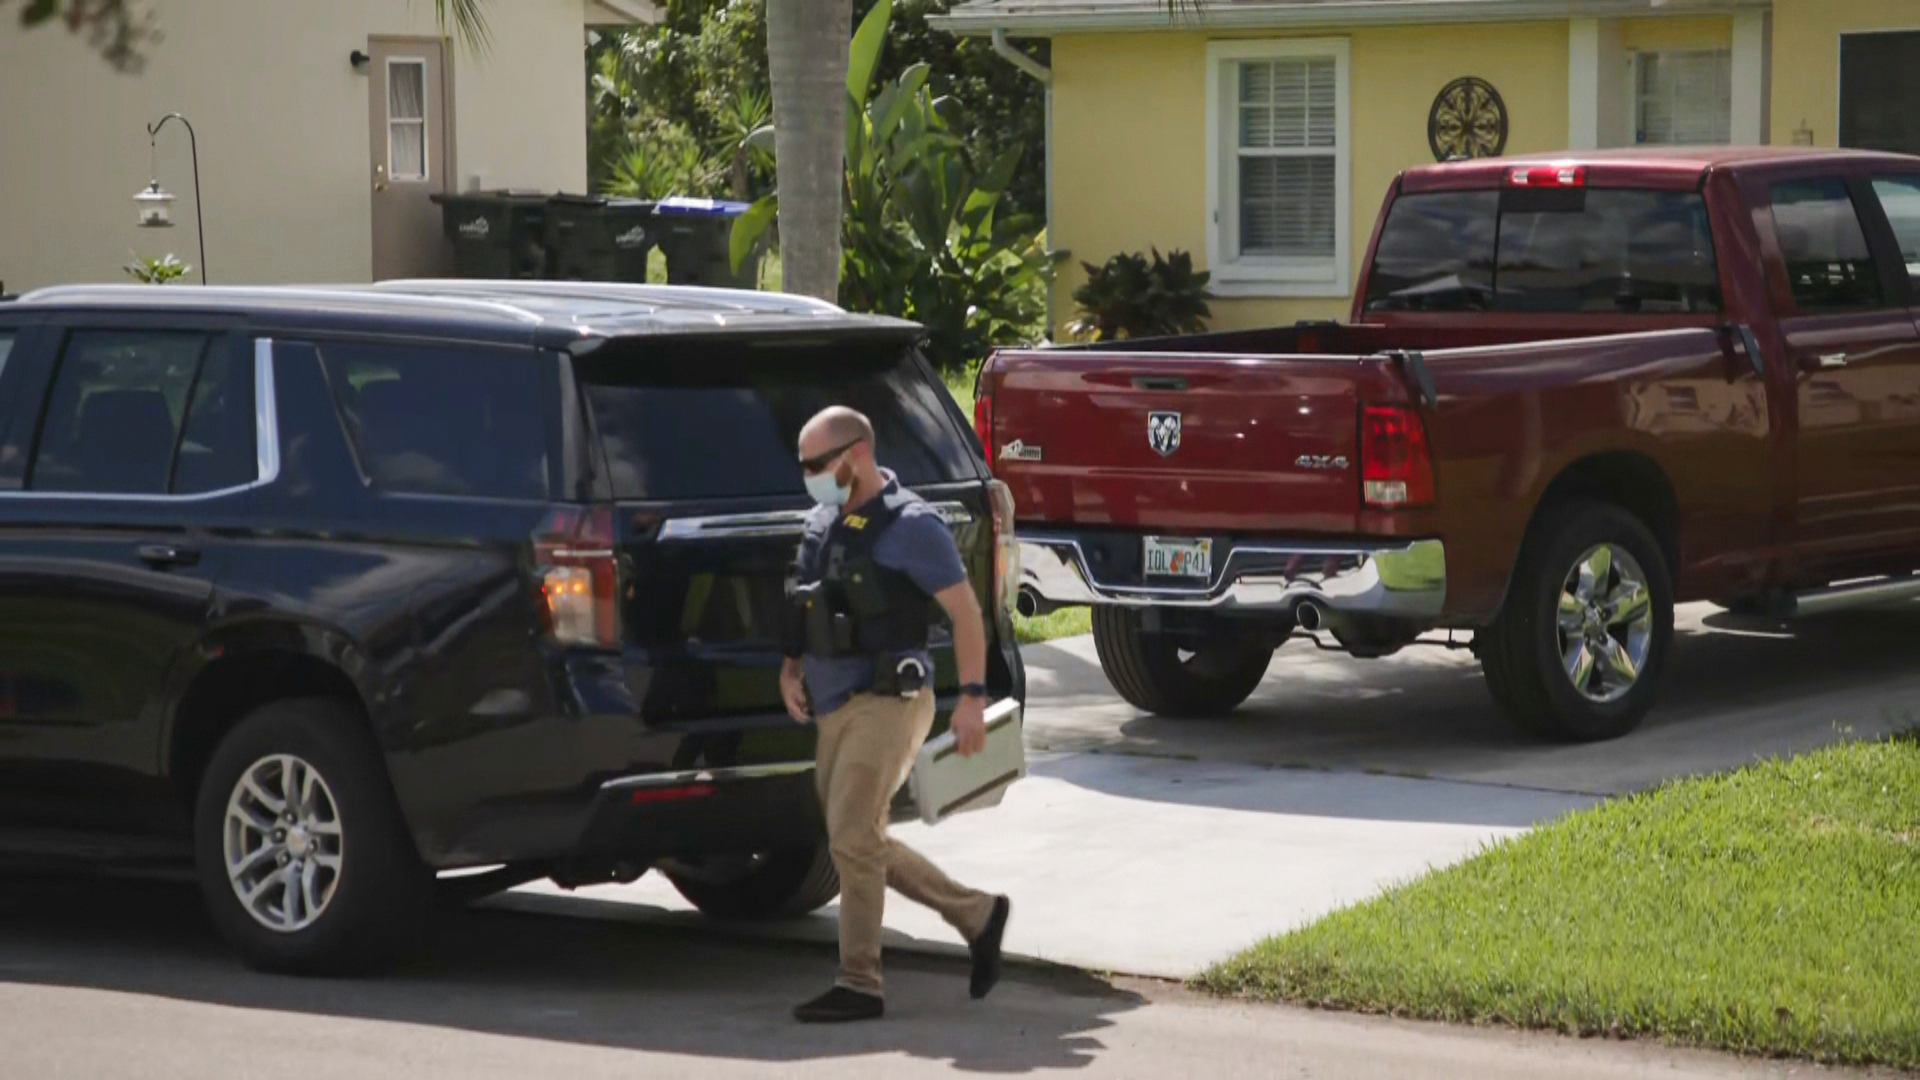 FBI agents take Brian Laundrie's personal items for DNA matching, attorney says